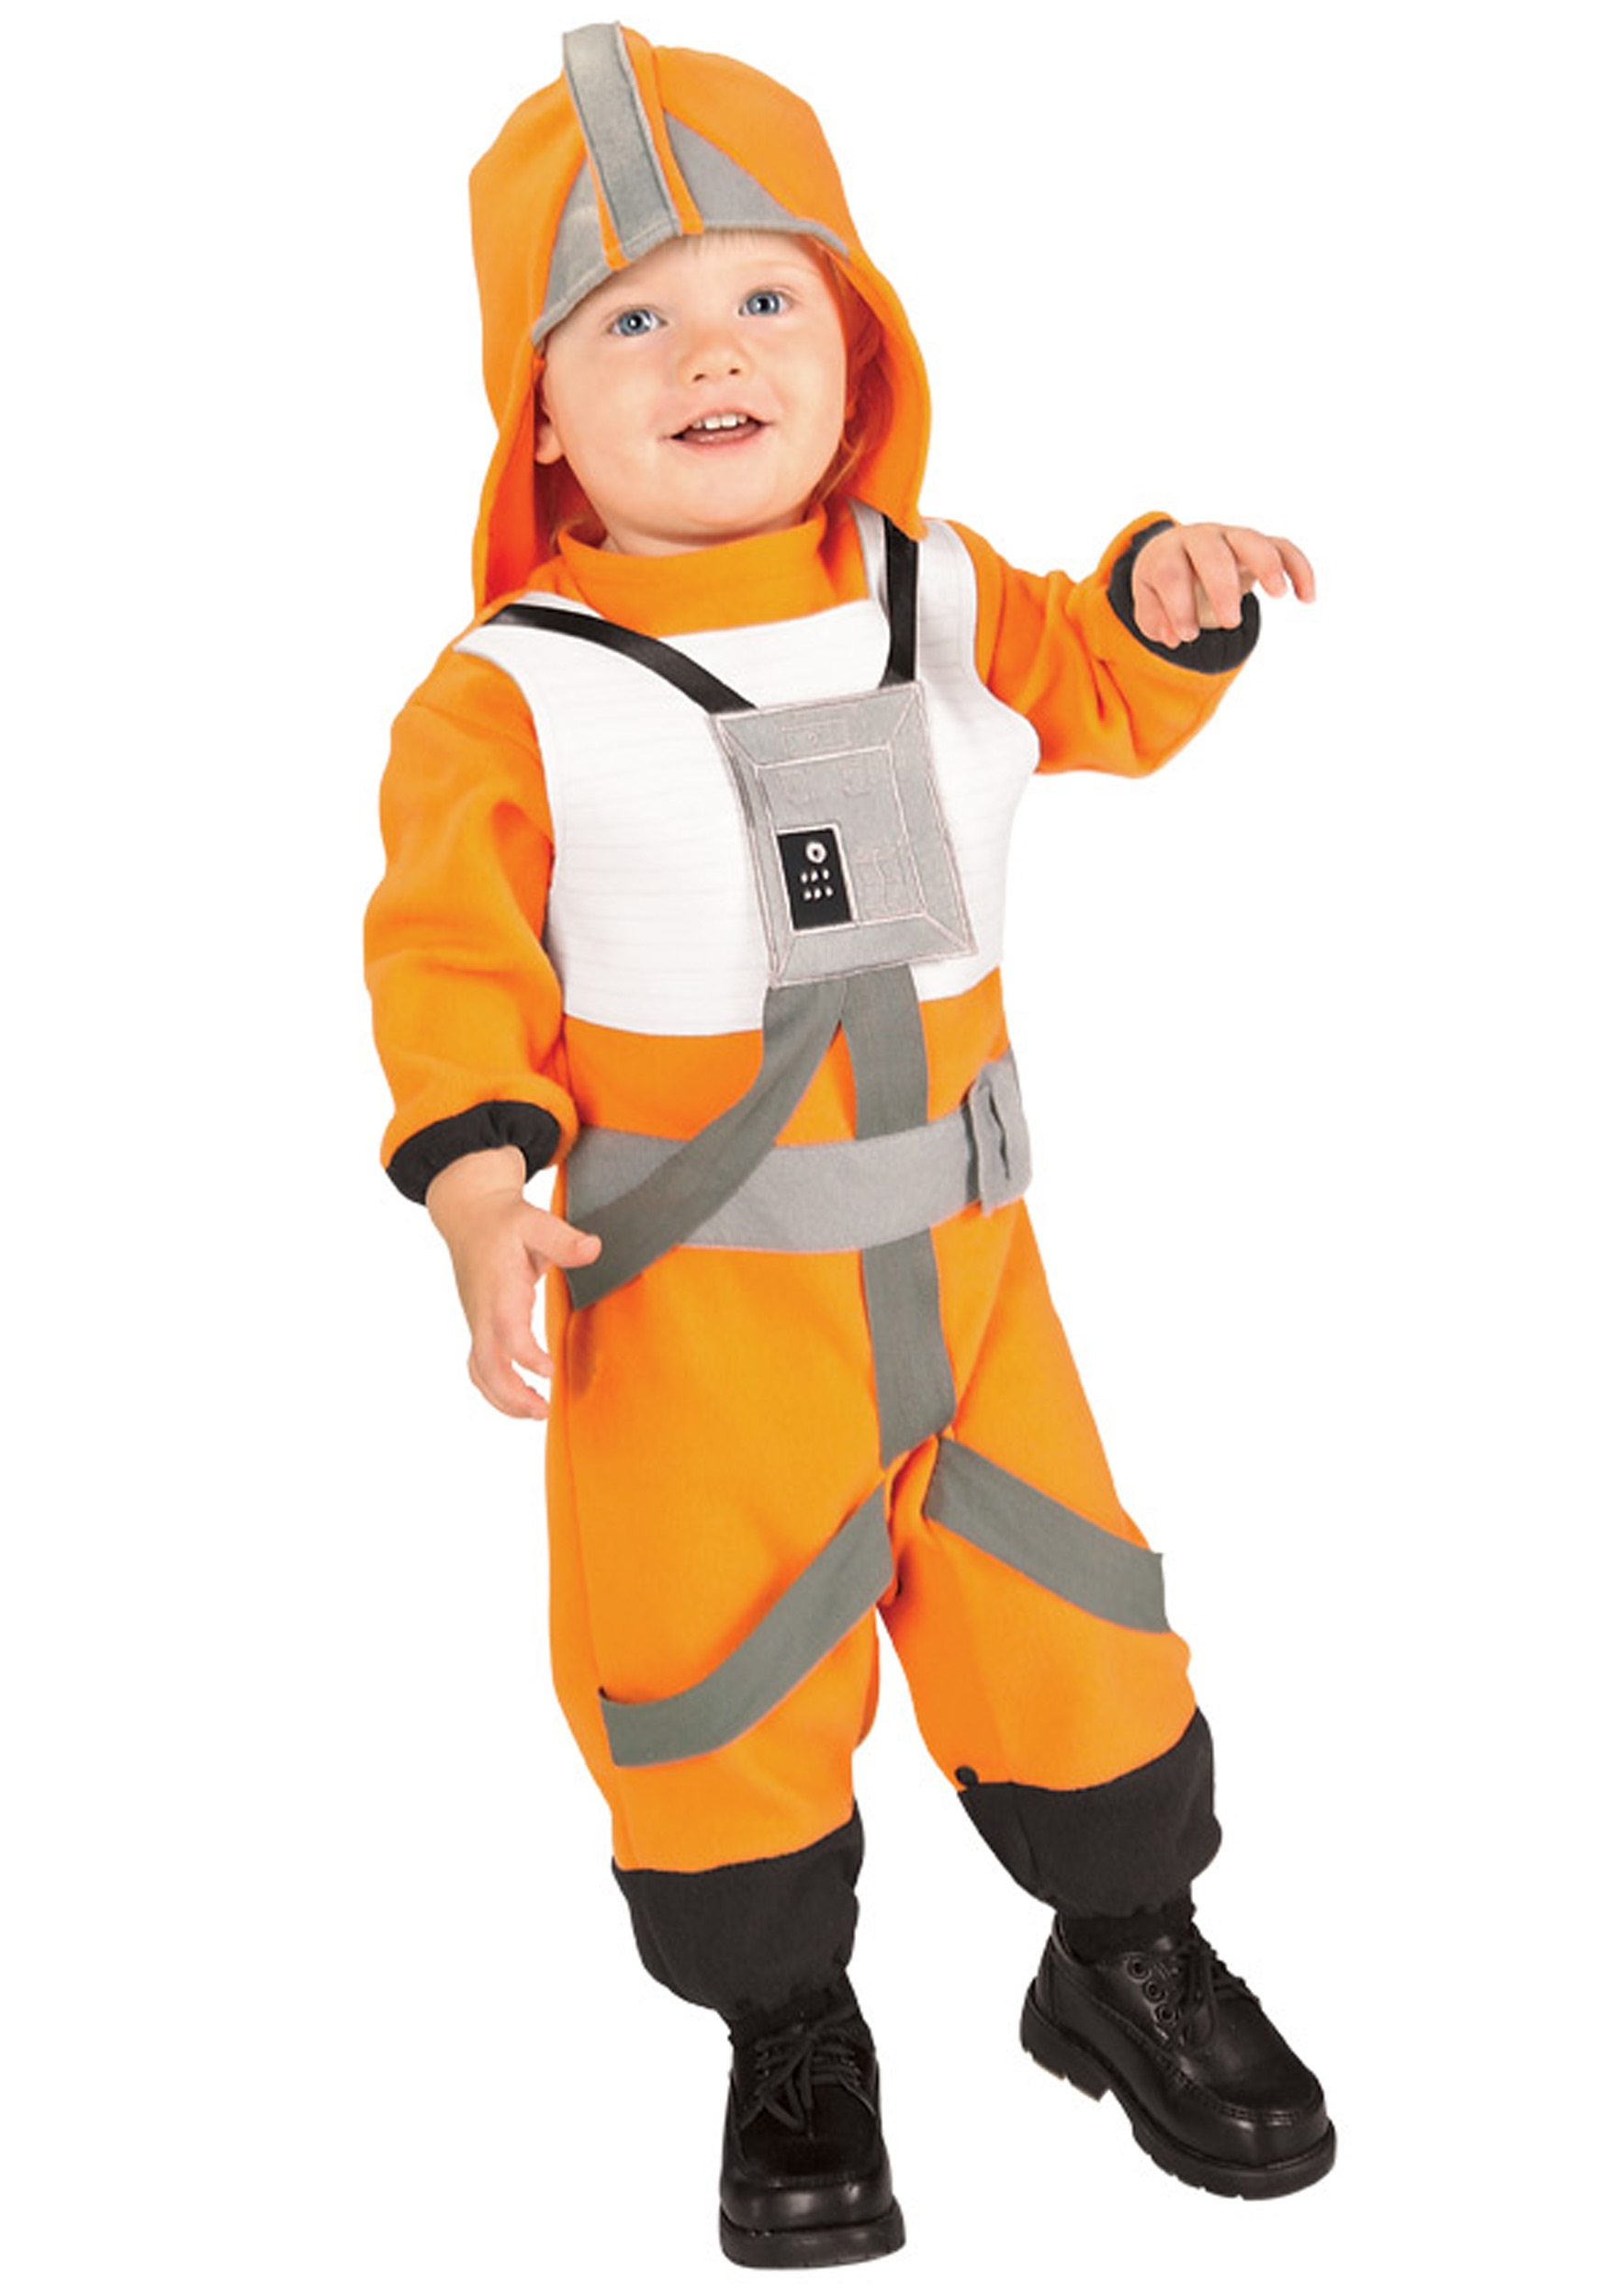 Toddler X-Wing Fighter Pilot Costume RU885308